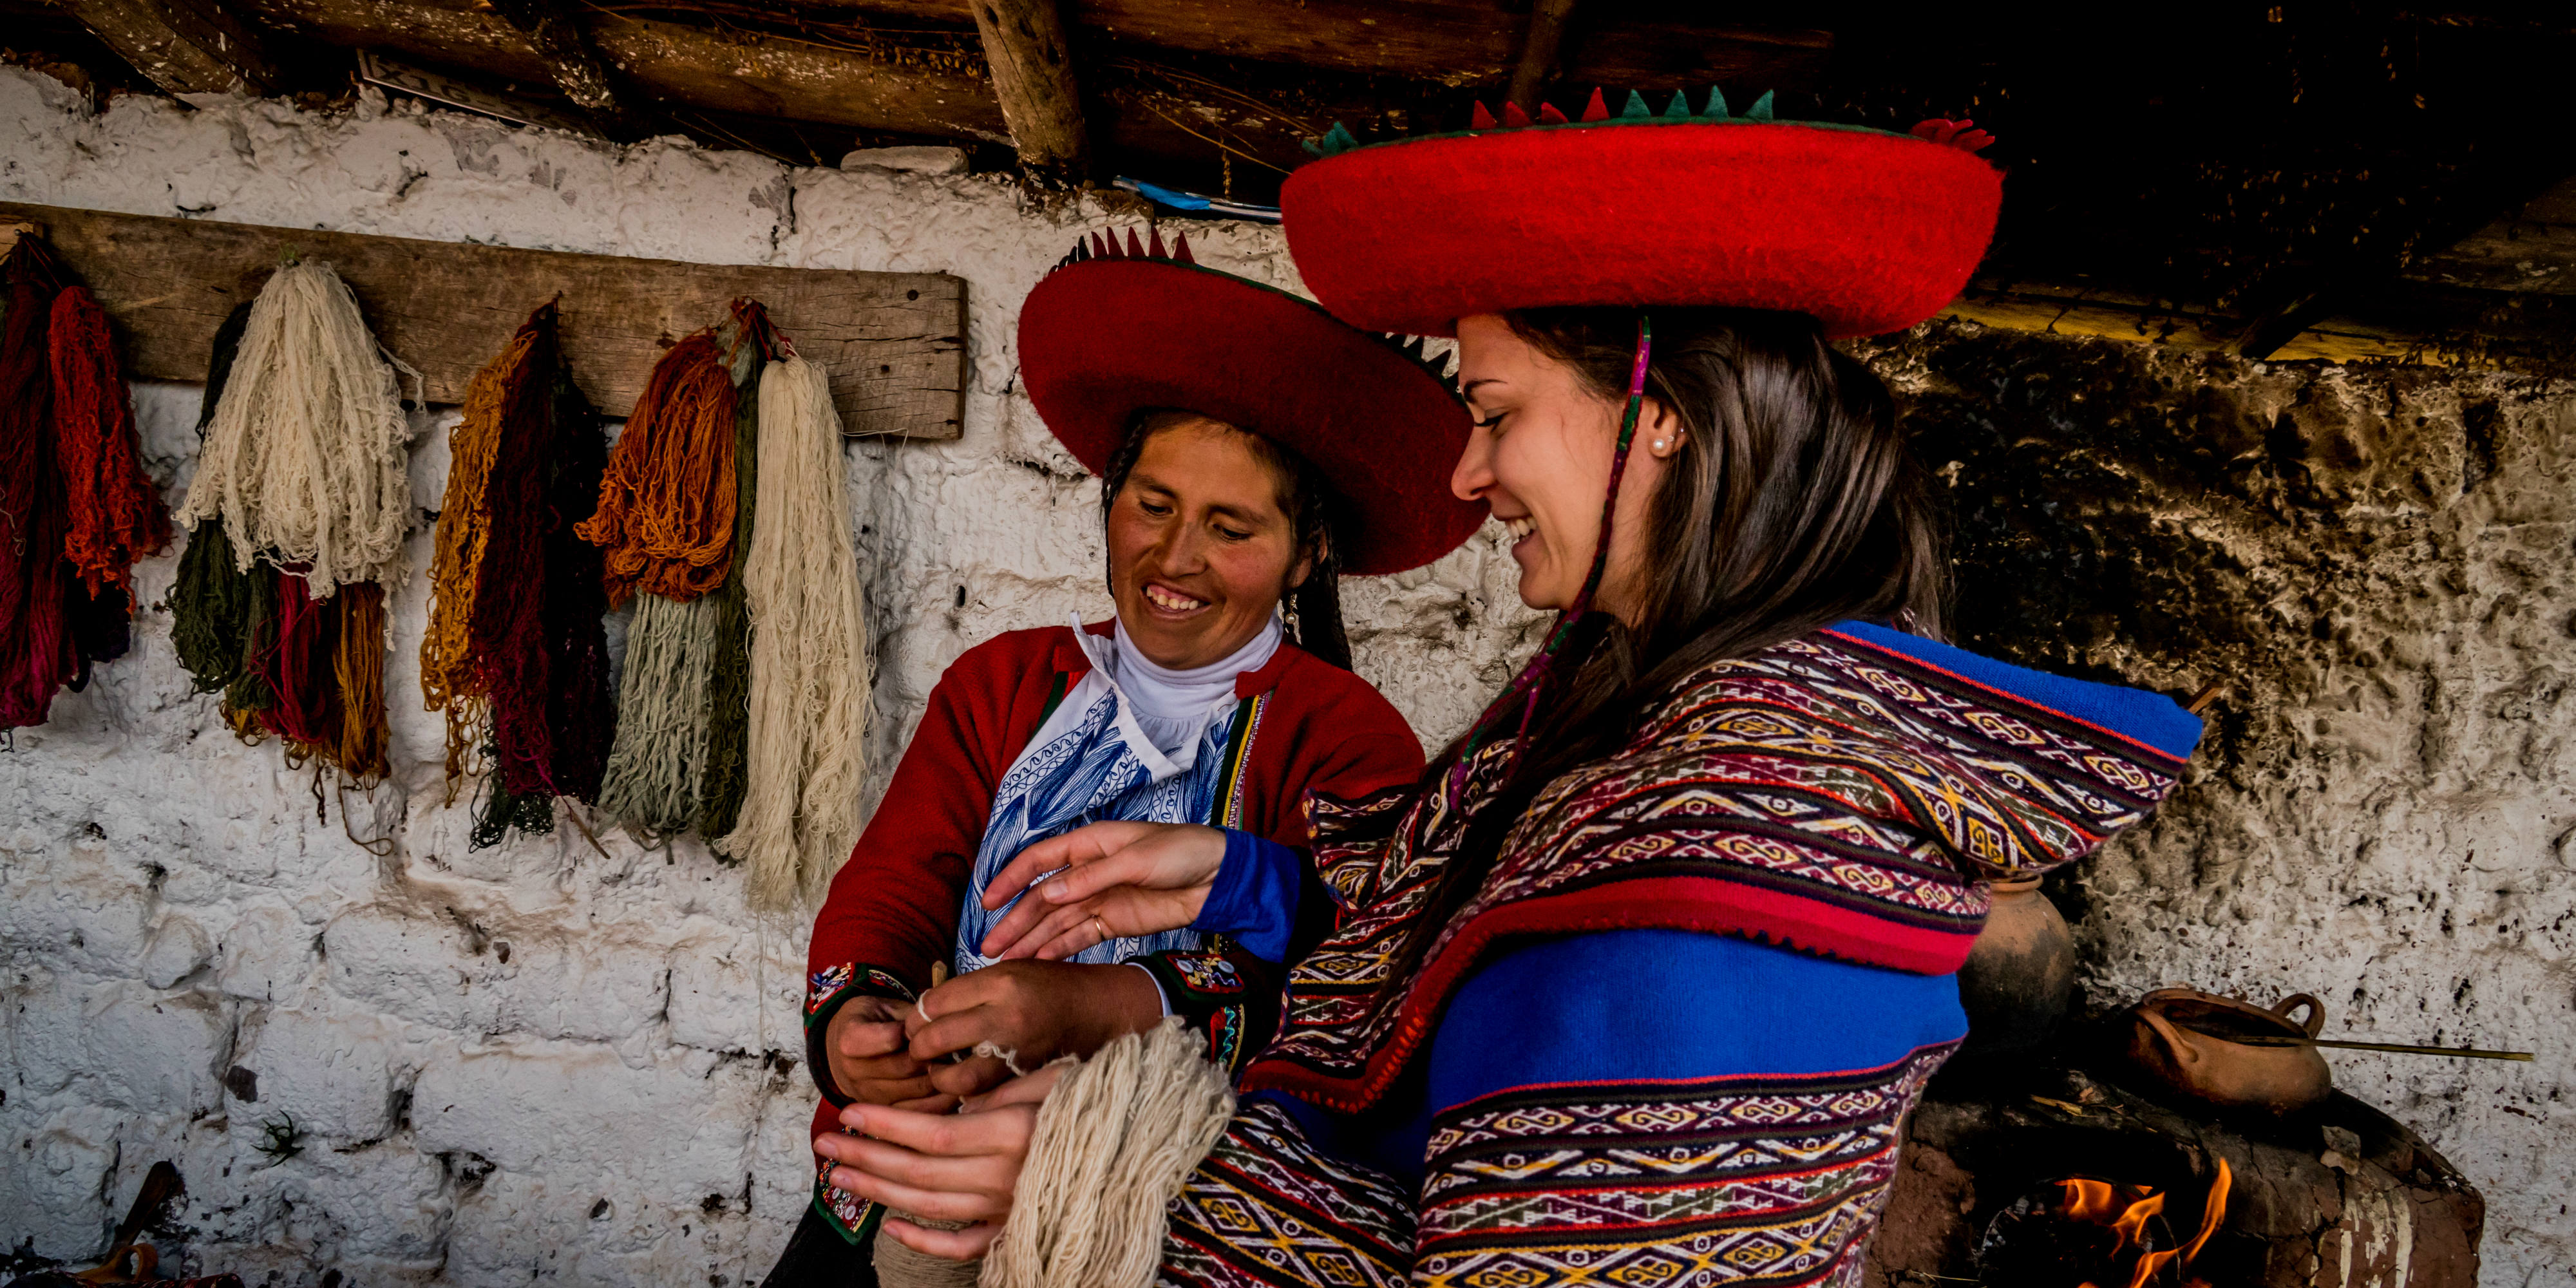 A GVI participant learns about dying wool in Cusco, Peru. As part of community development internships abroad, participants help facilitate business and skills development workshops.